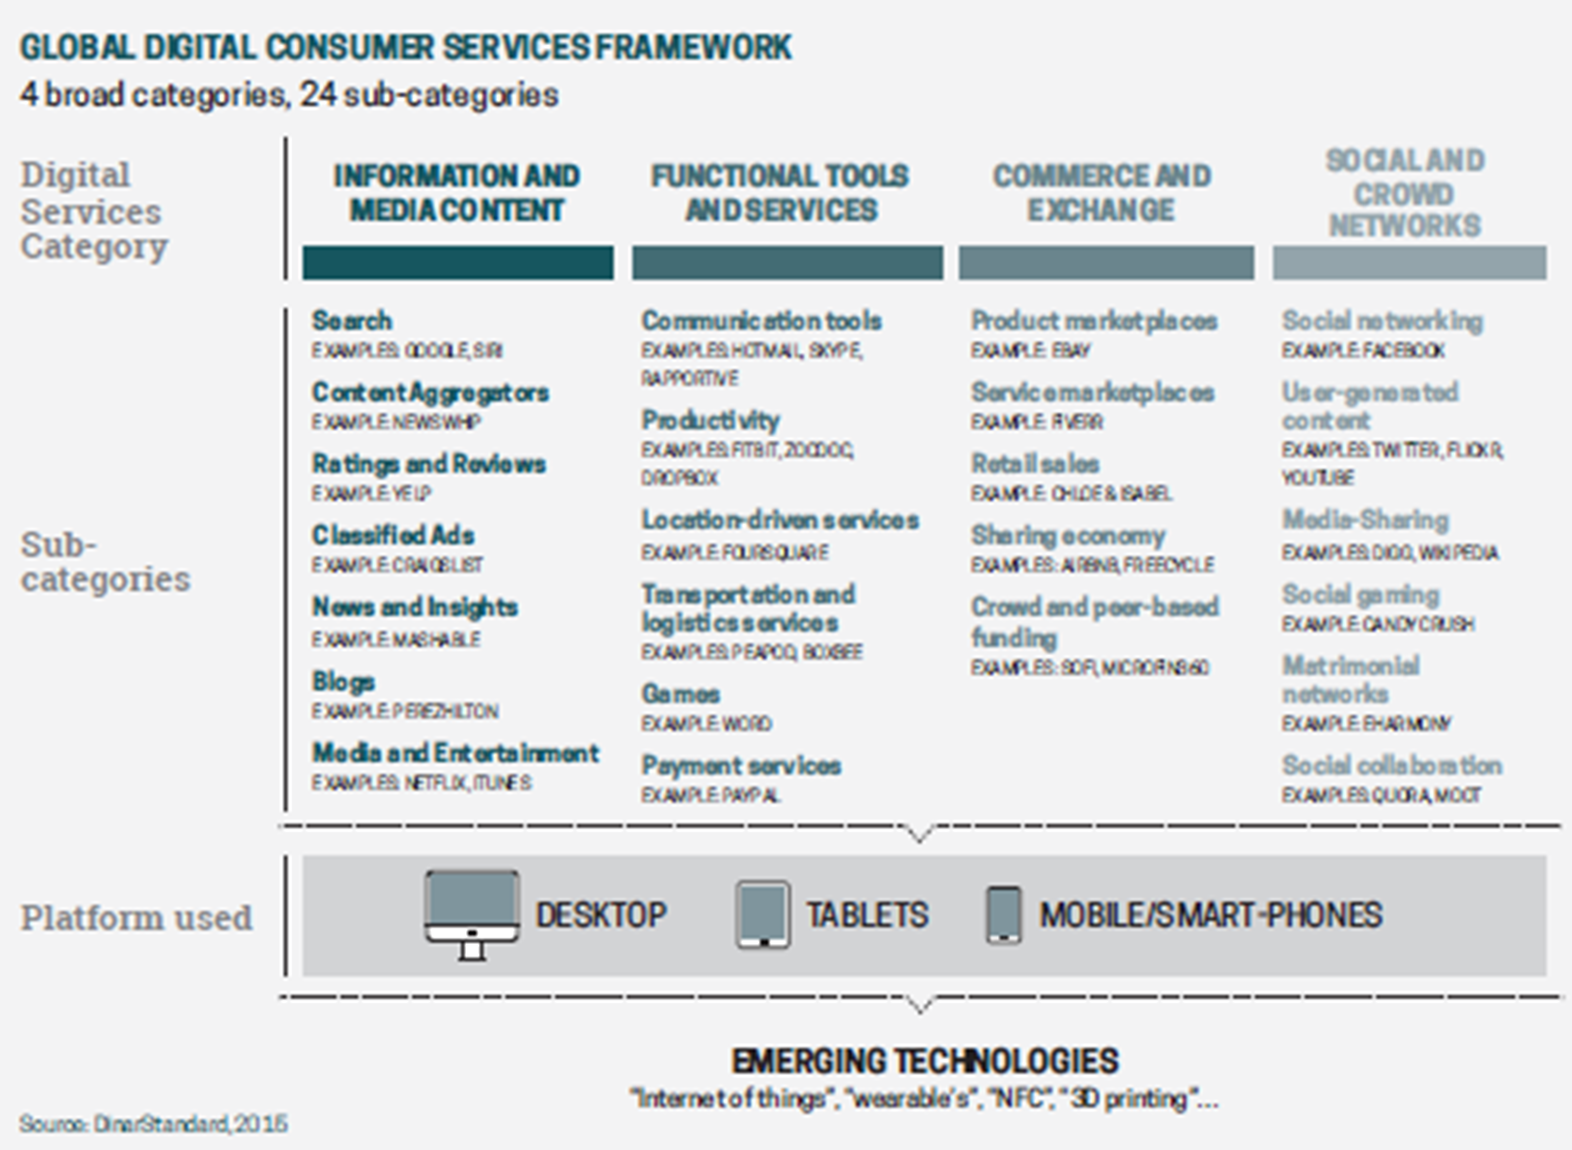 Global Digital Consumer Services Framework